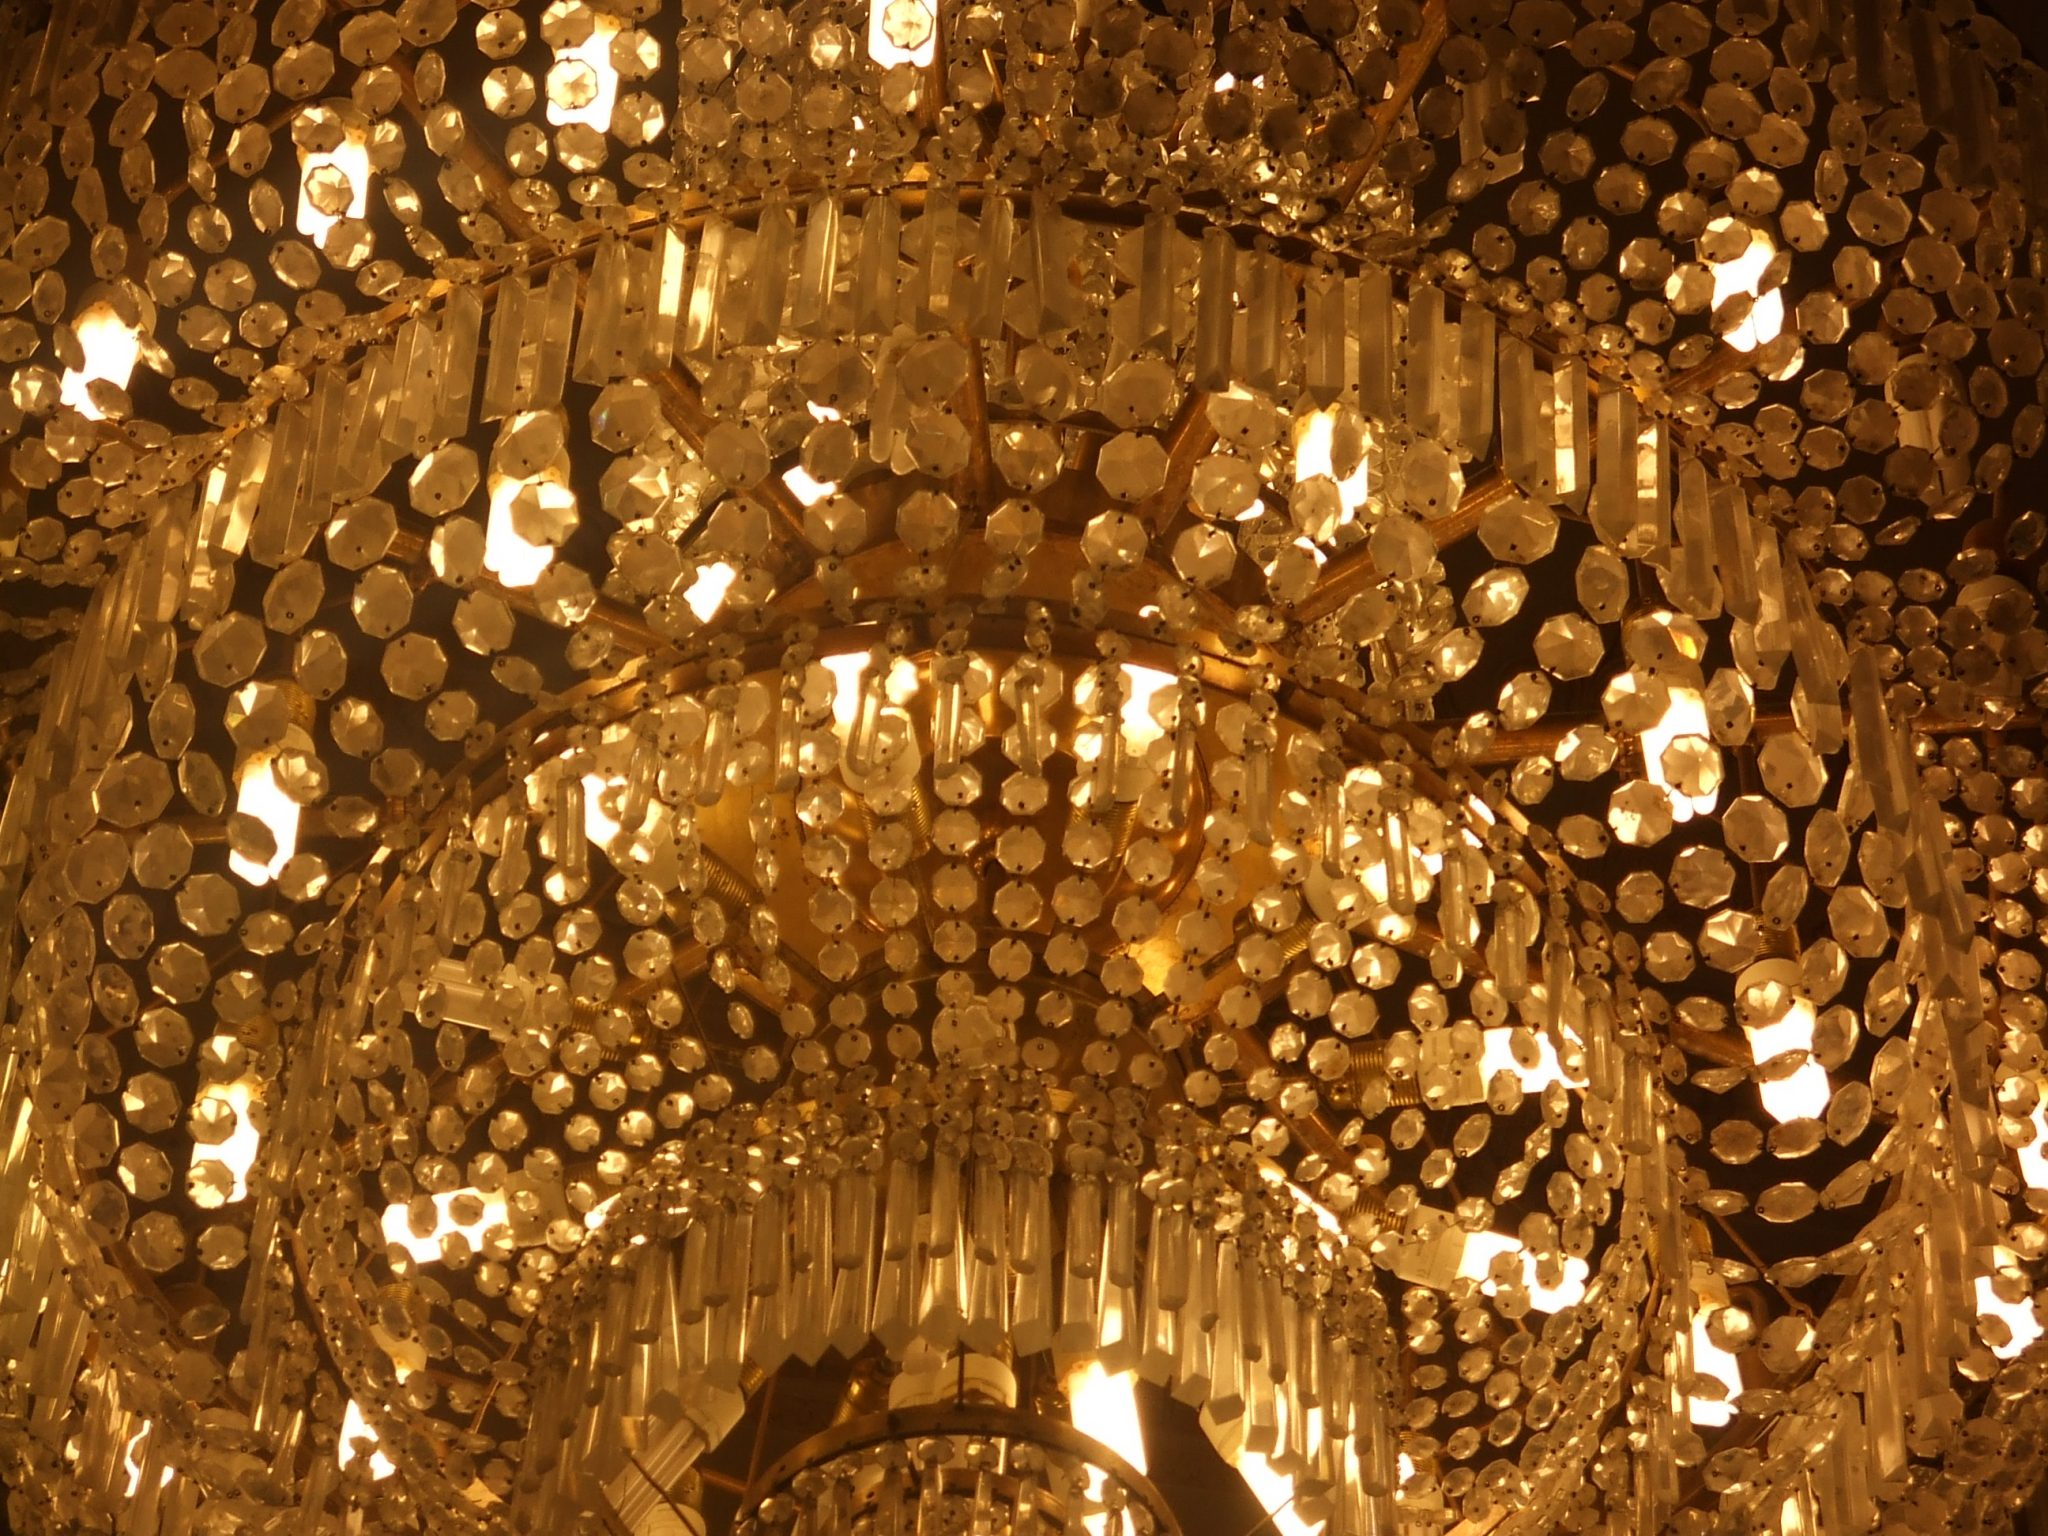 Chandelier in the Palace of Parliament, Bucharest